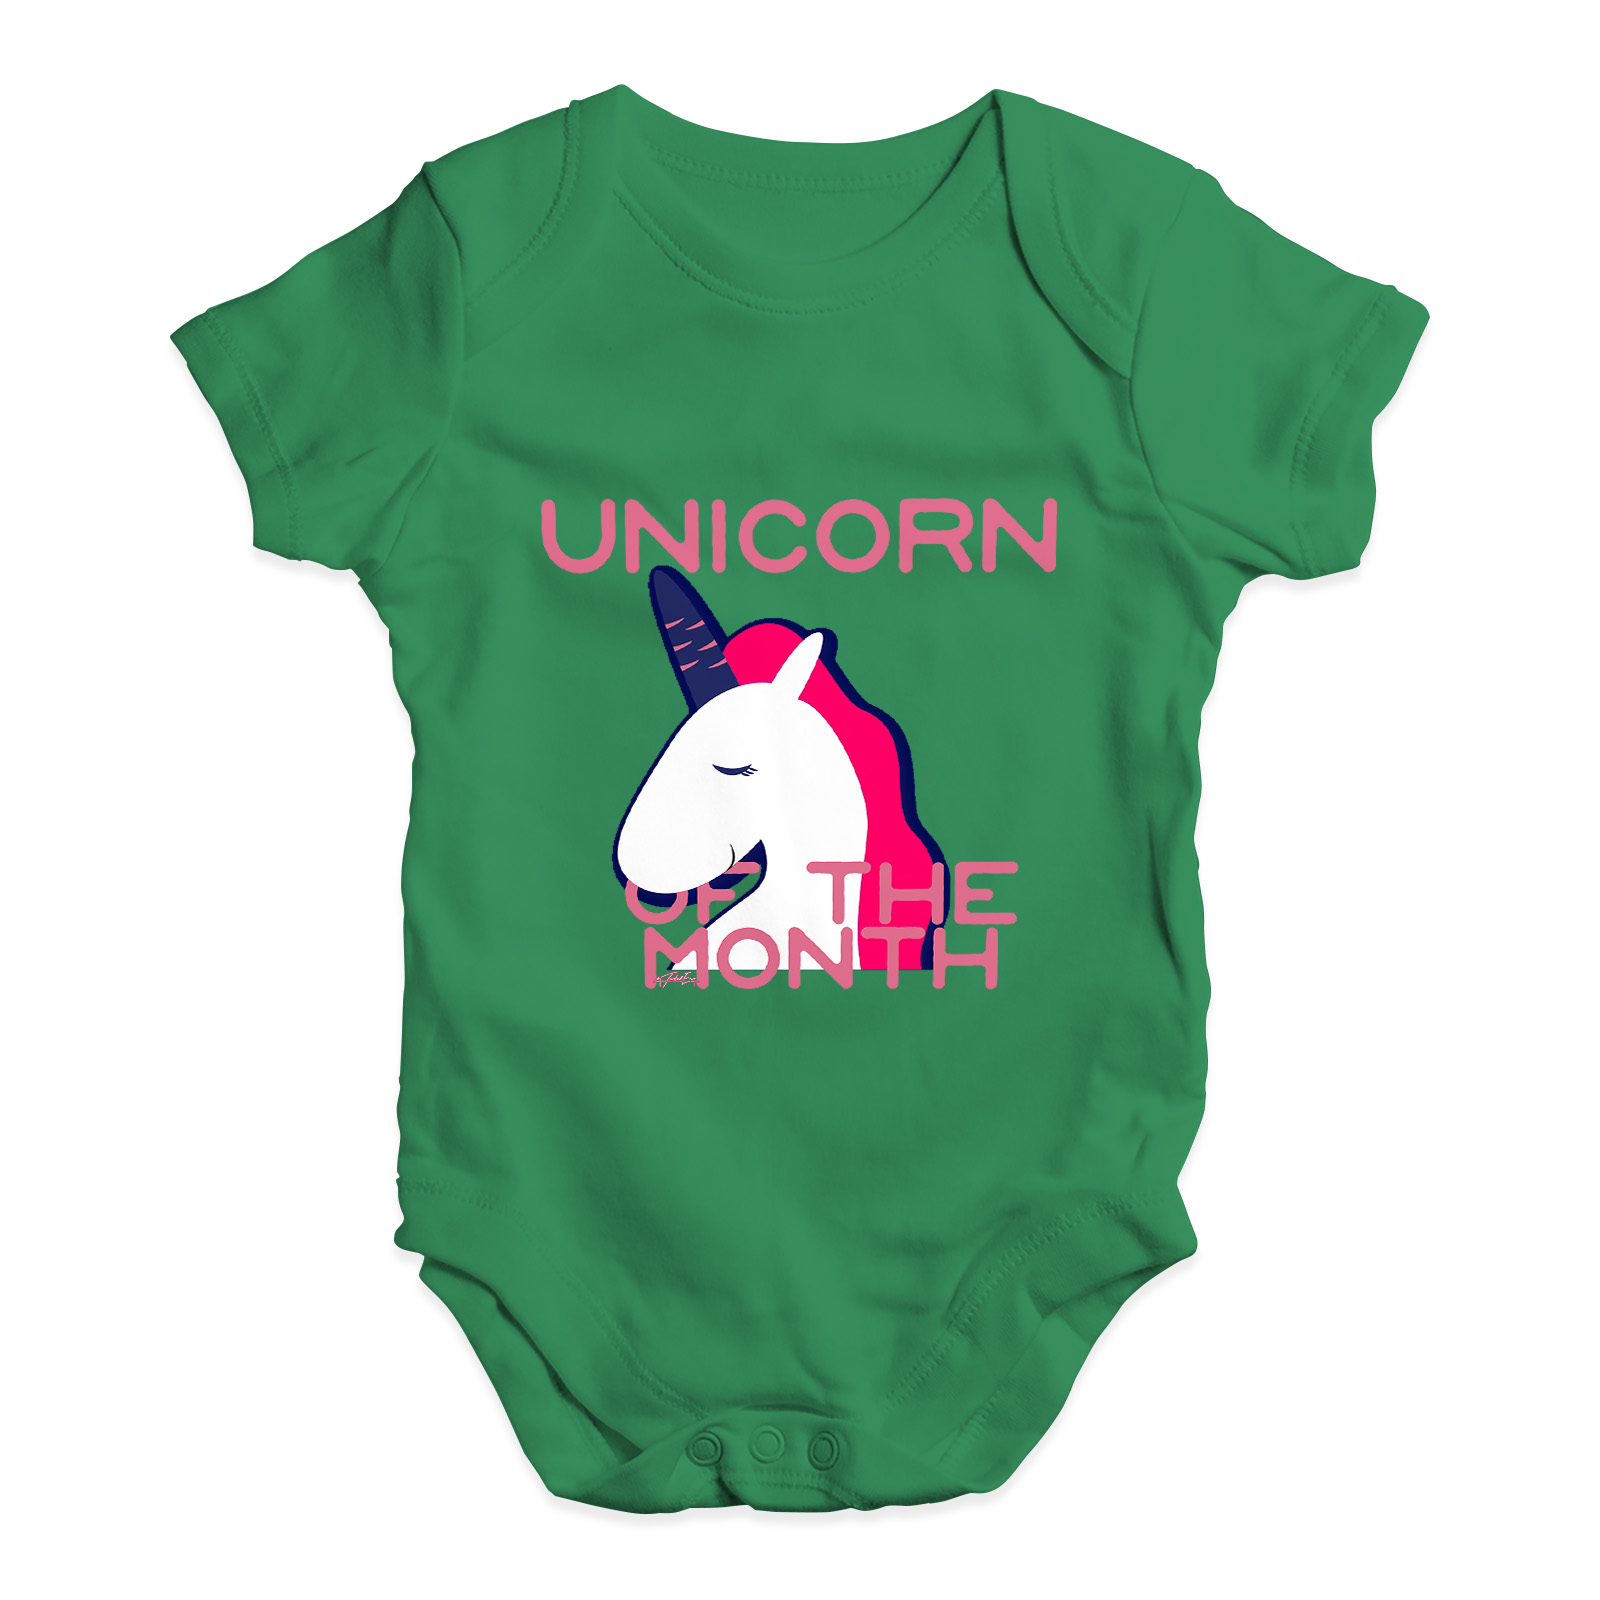 4c79e2ae1 Funny Infant Baby Bodysuit Unicorn Of The Month Baby Unisex Baby ...